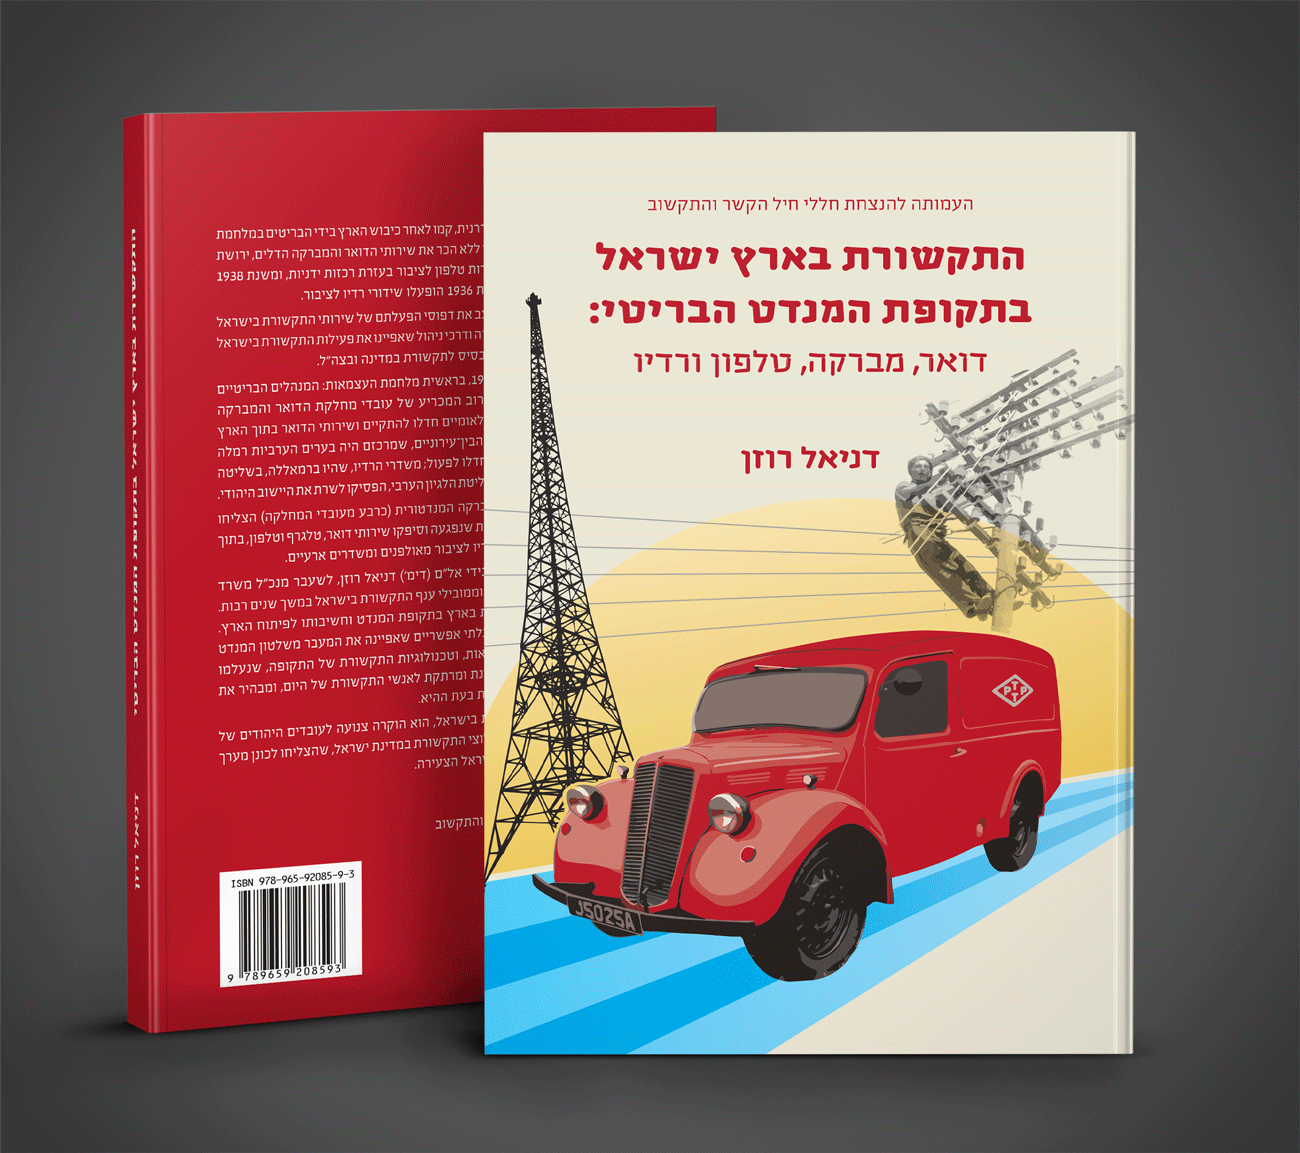 http://bigeyes.co.il/wp-content/uploads/2019/07/communications-book-cover.png